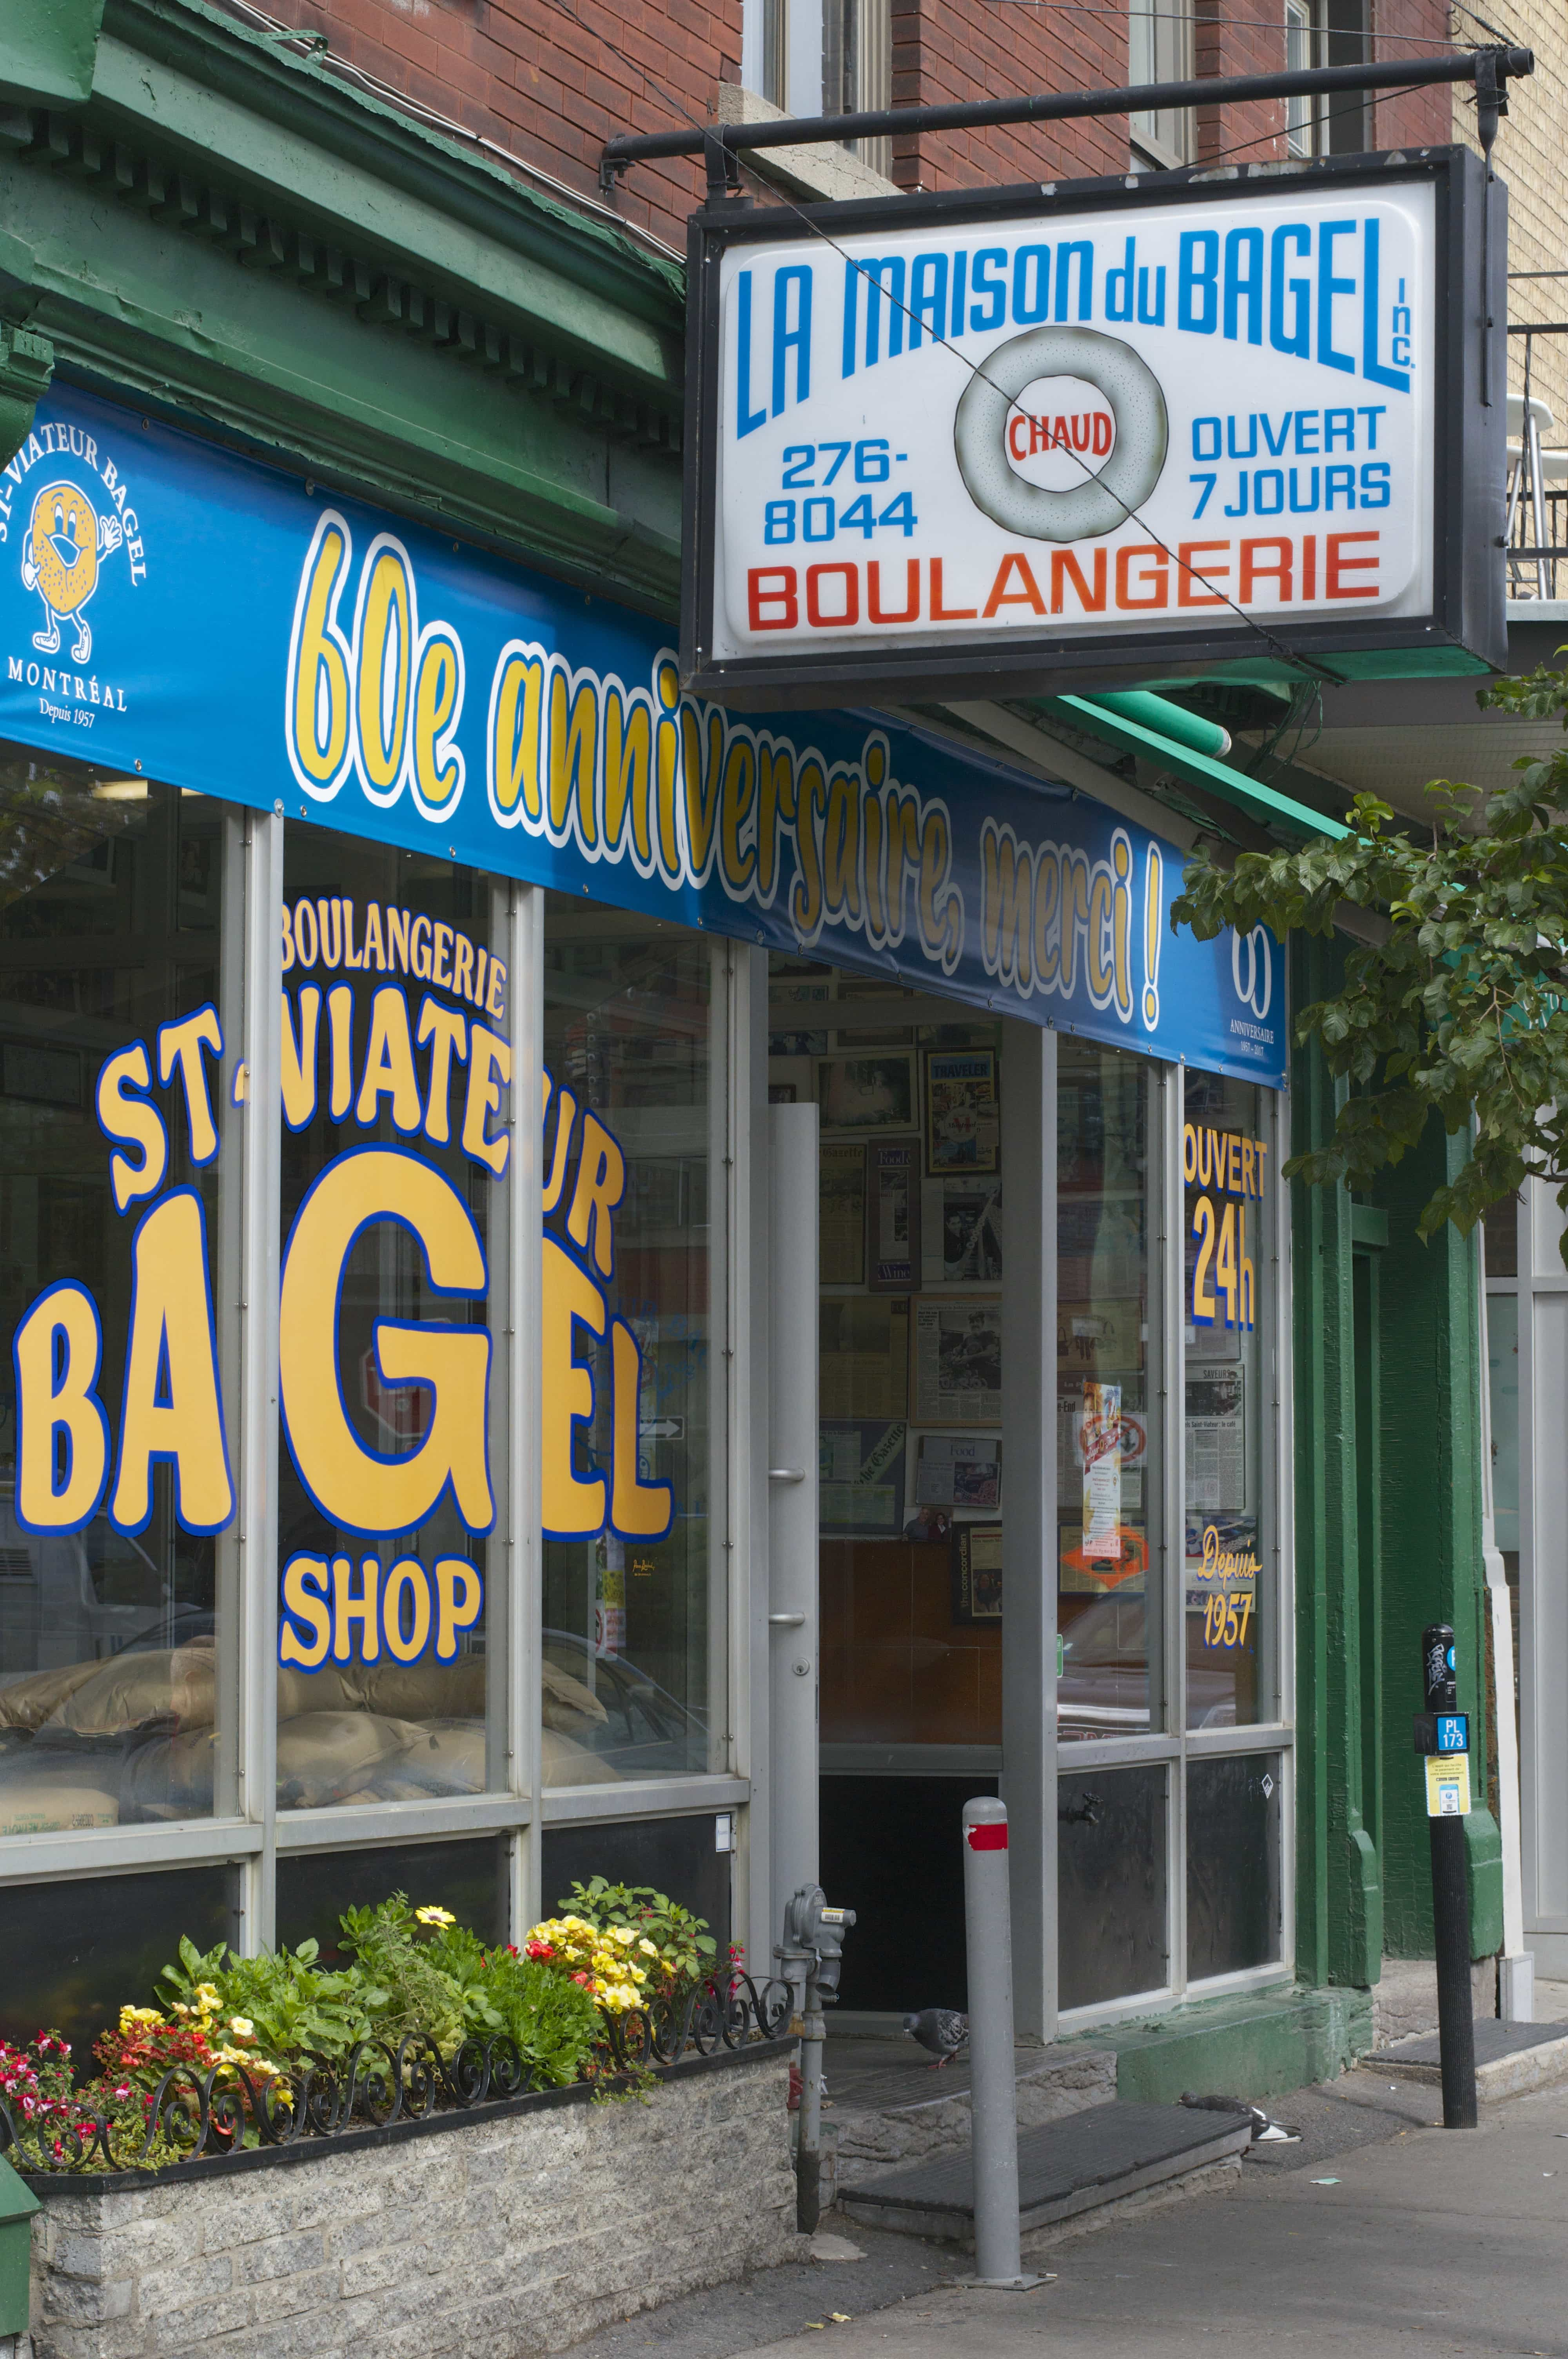 My Montreal Travel Guide | St Viateur Bagel